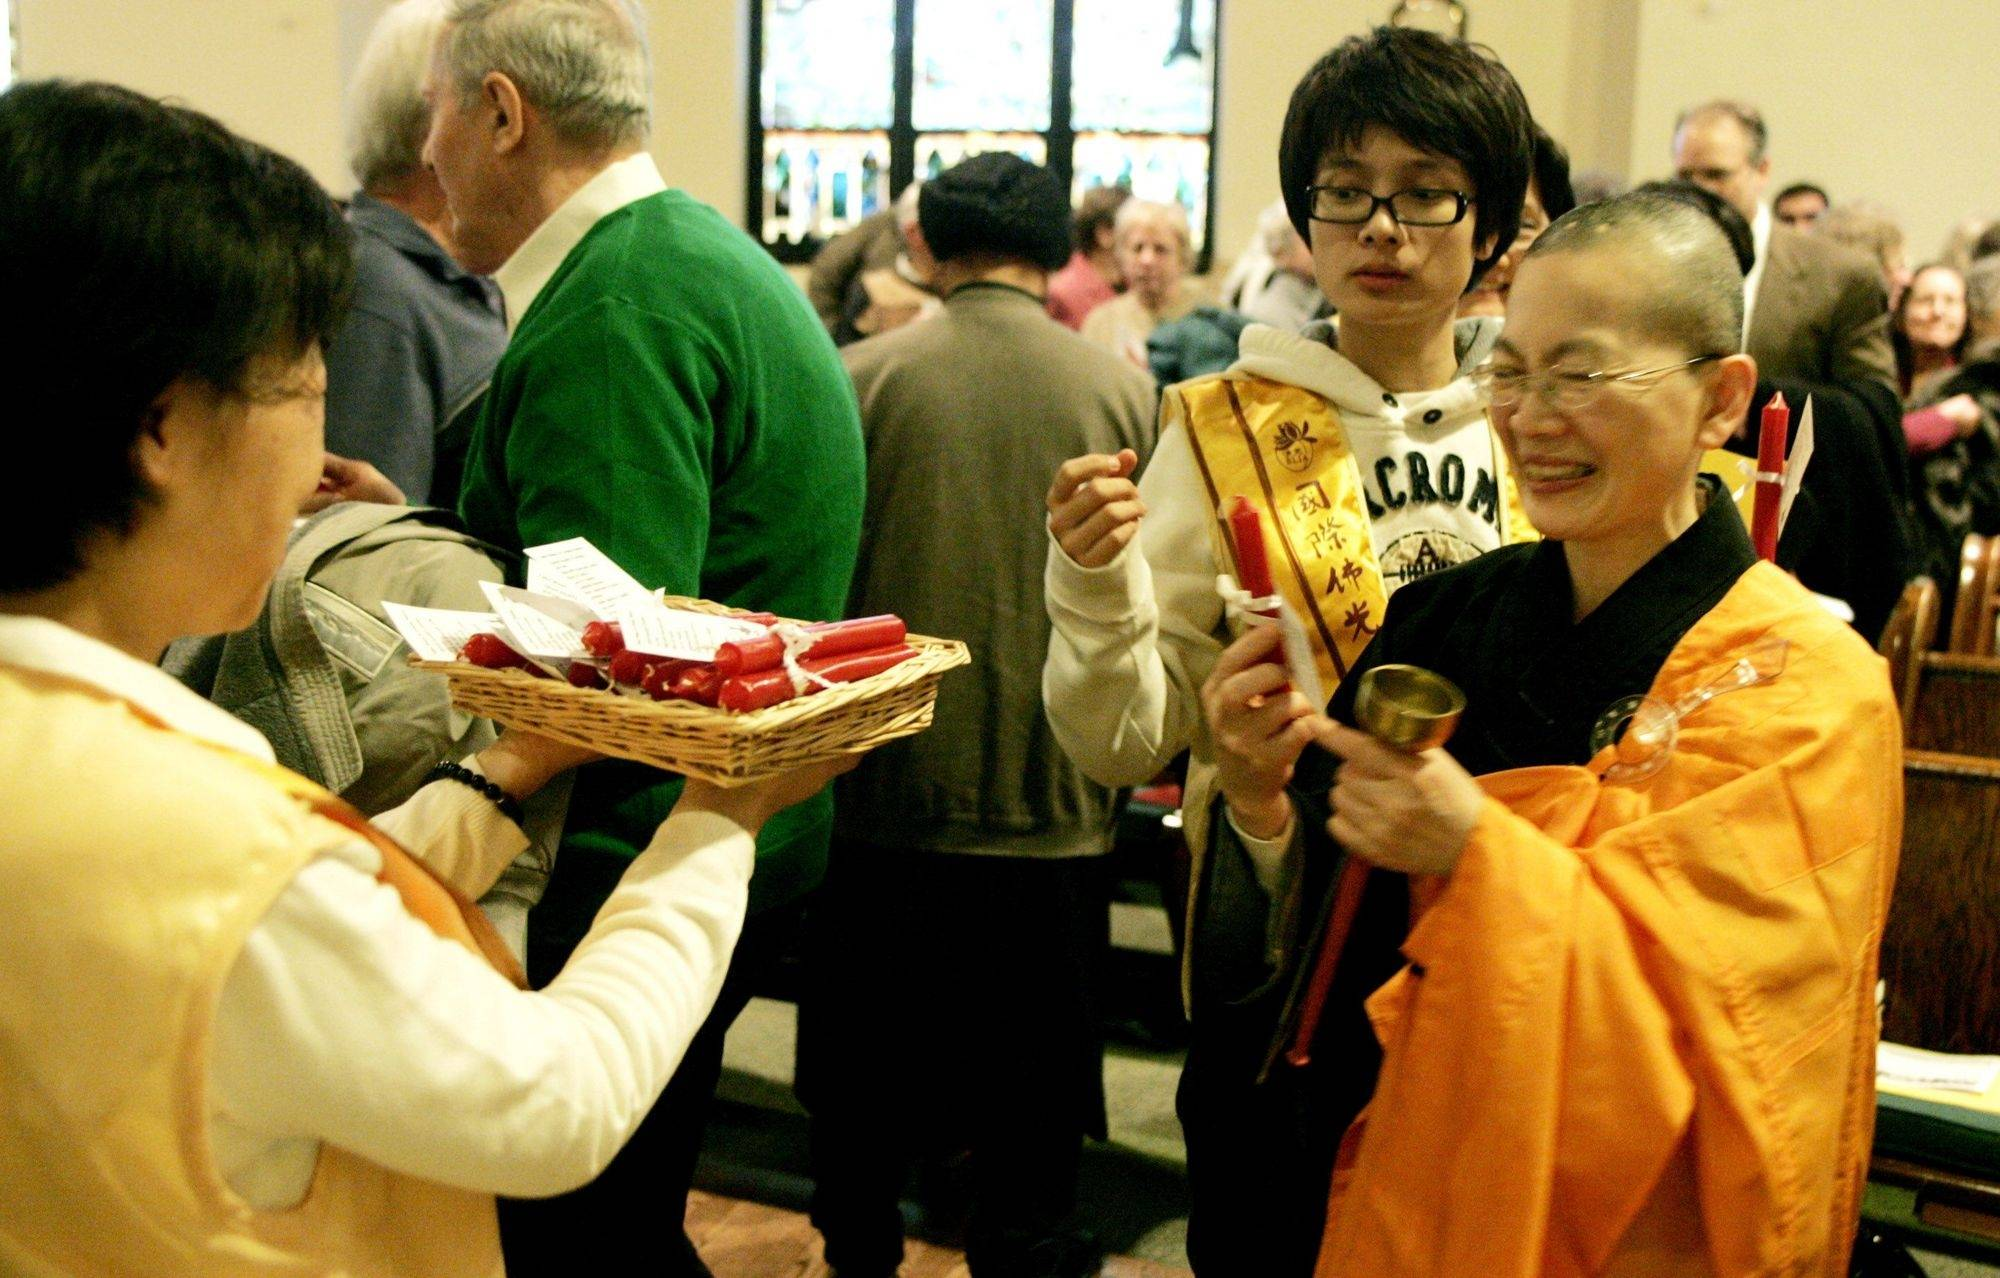 Venerable Miaotsan, right, picks up a candle as a way of committing herself to be a light of peace during the 5th Annual World Peace Day Interfaith Prayer Service on Sunday at First Congregational Church in Naperville.